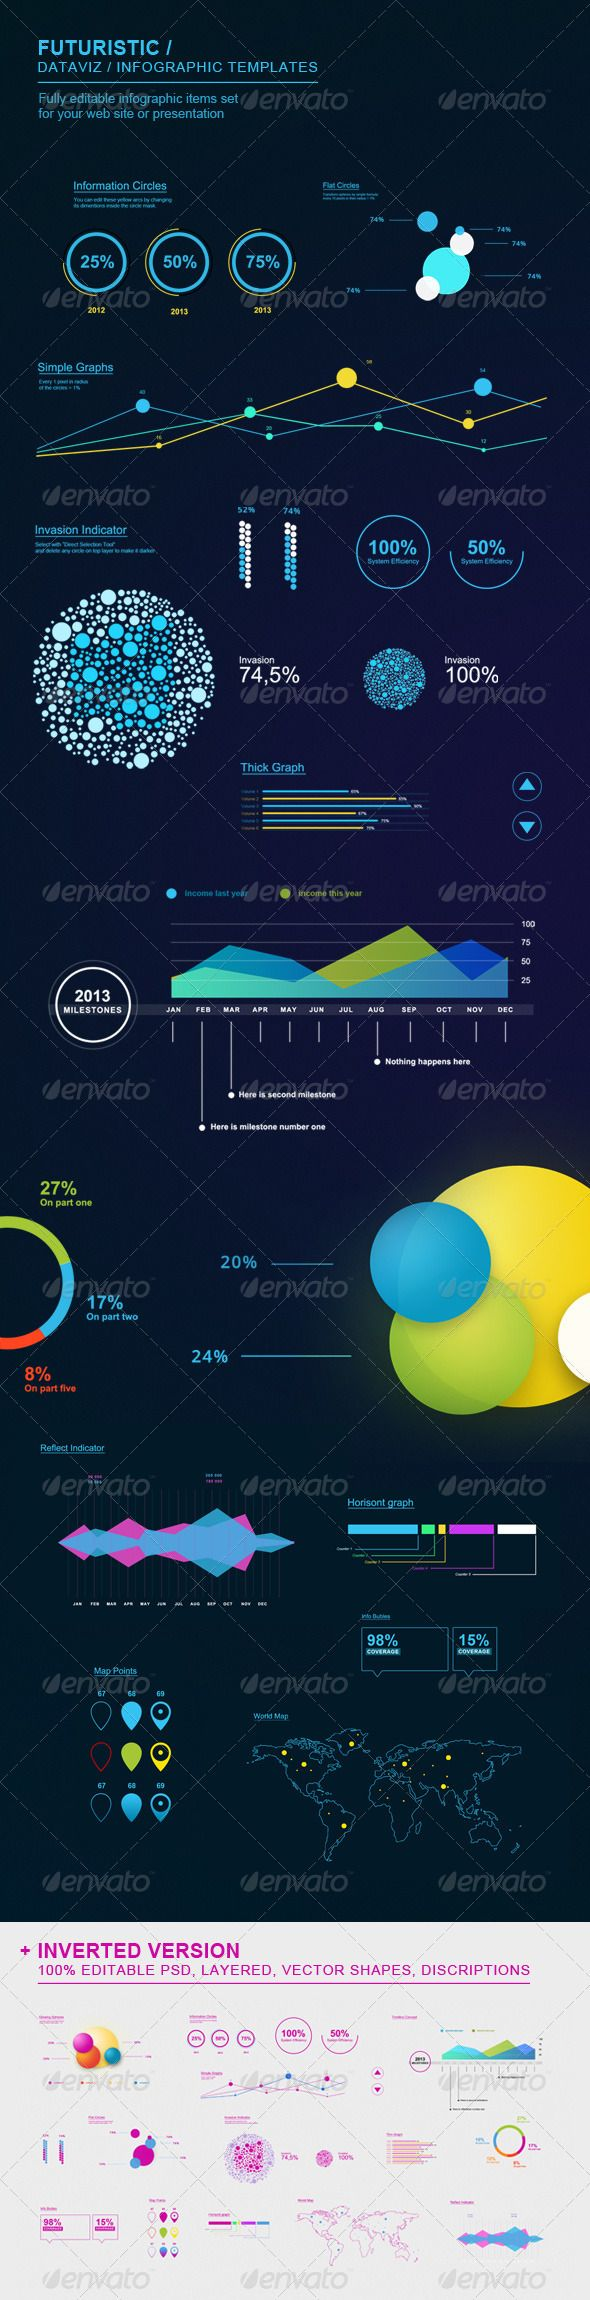 Futuristic Infographic Elements Set Template PSD. Download here: http://graphicriver.net/item/futuristic-infographic-elements-set/3240765?s_rank=121&ref=yinkira